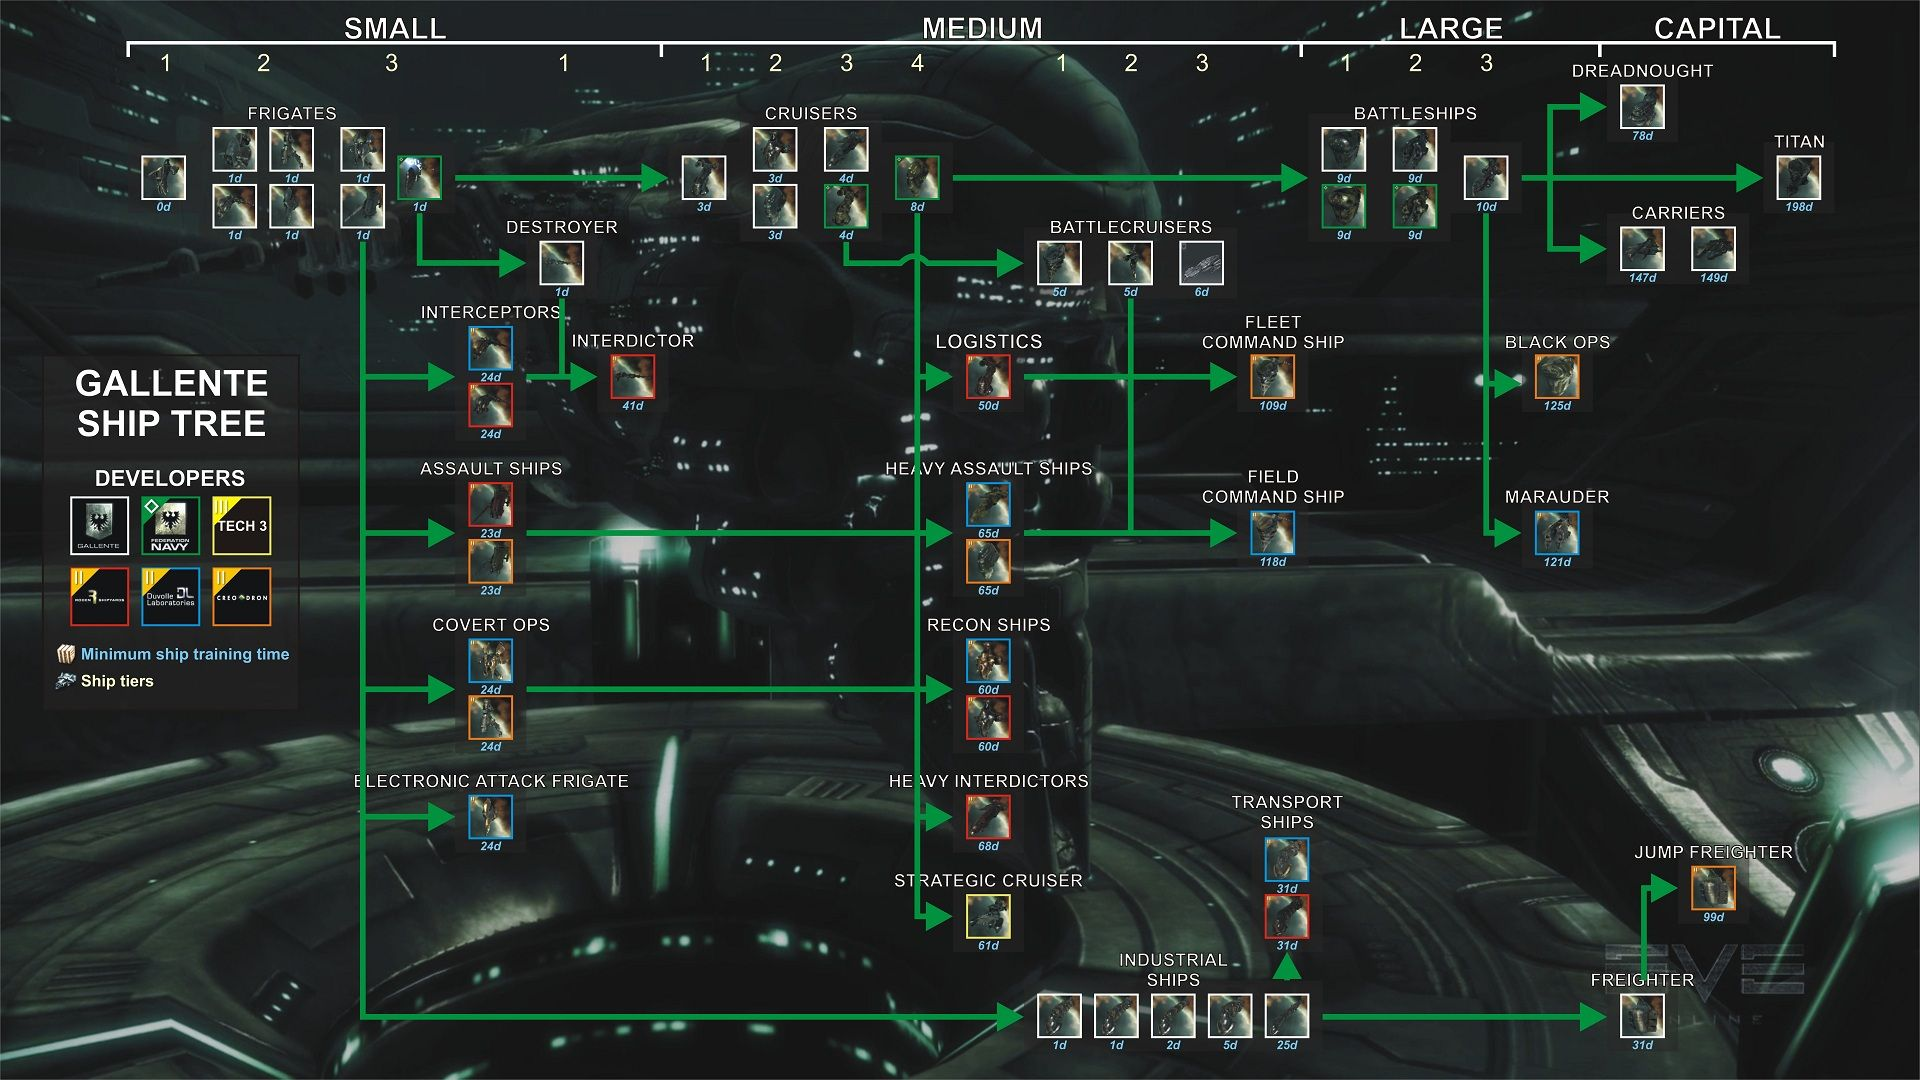 Gallente ship tree | Eve online infographic visual aids in